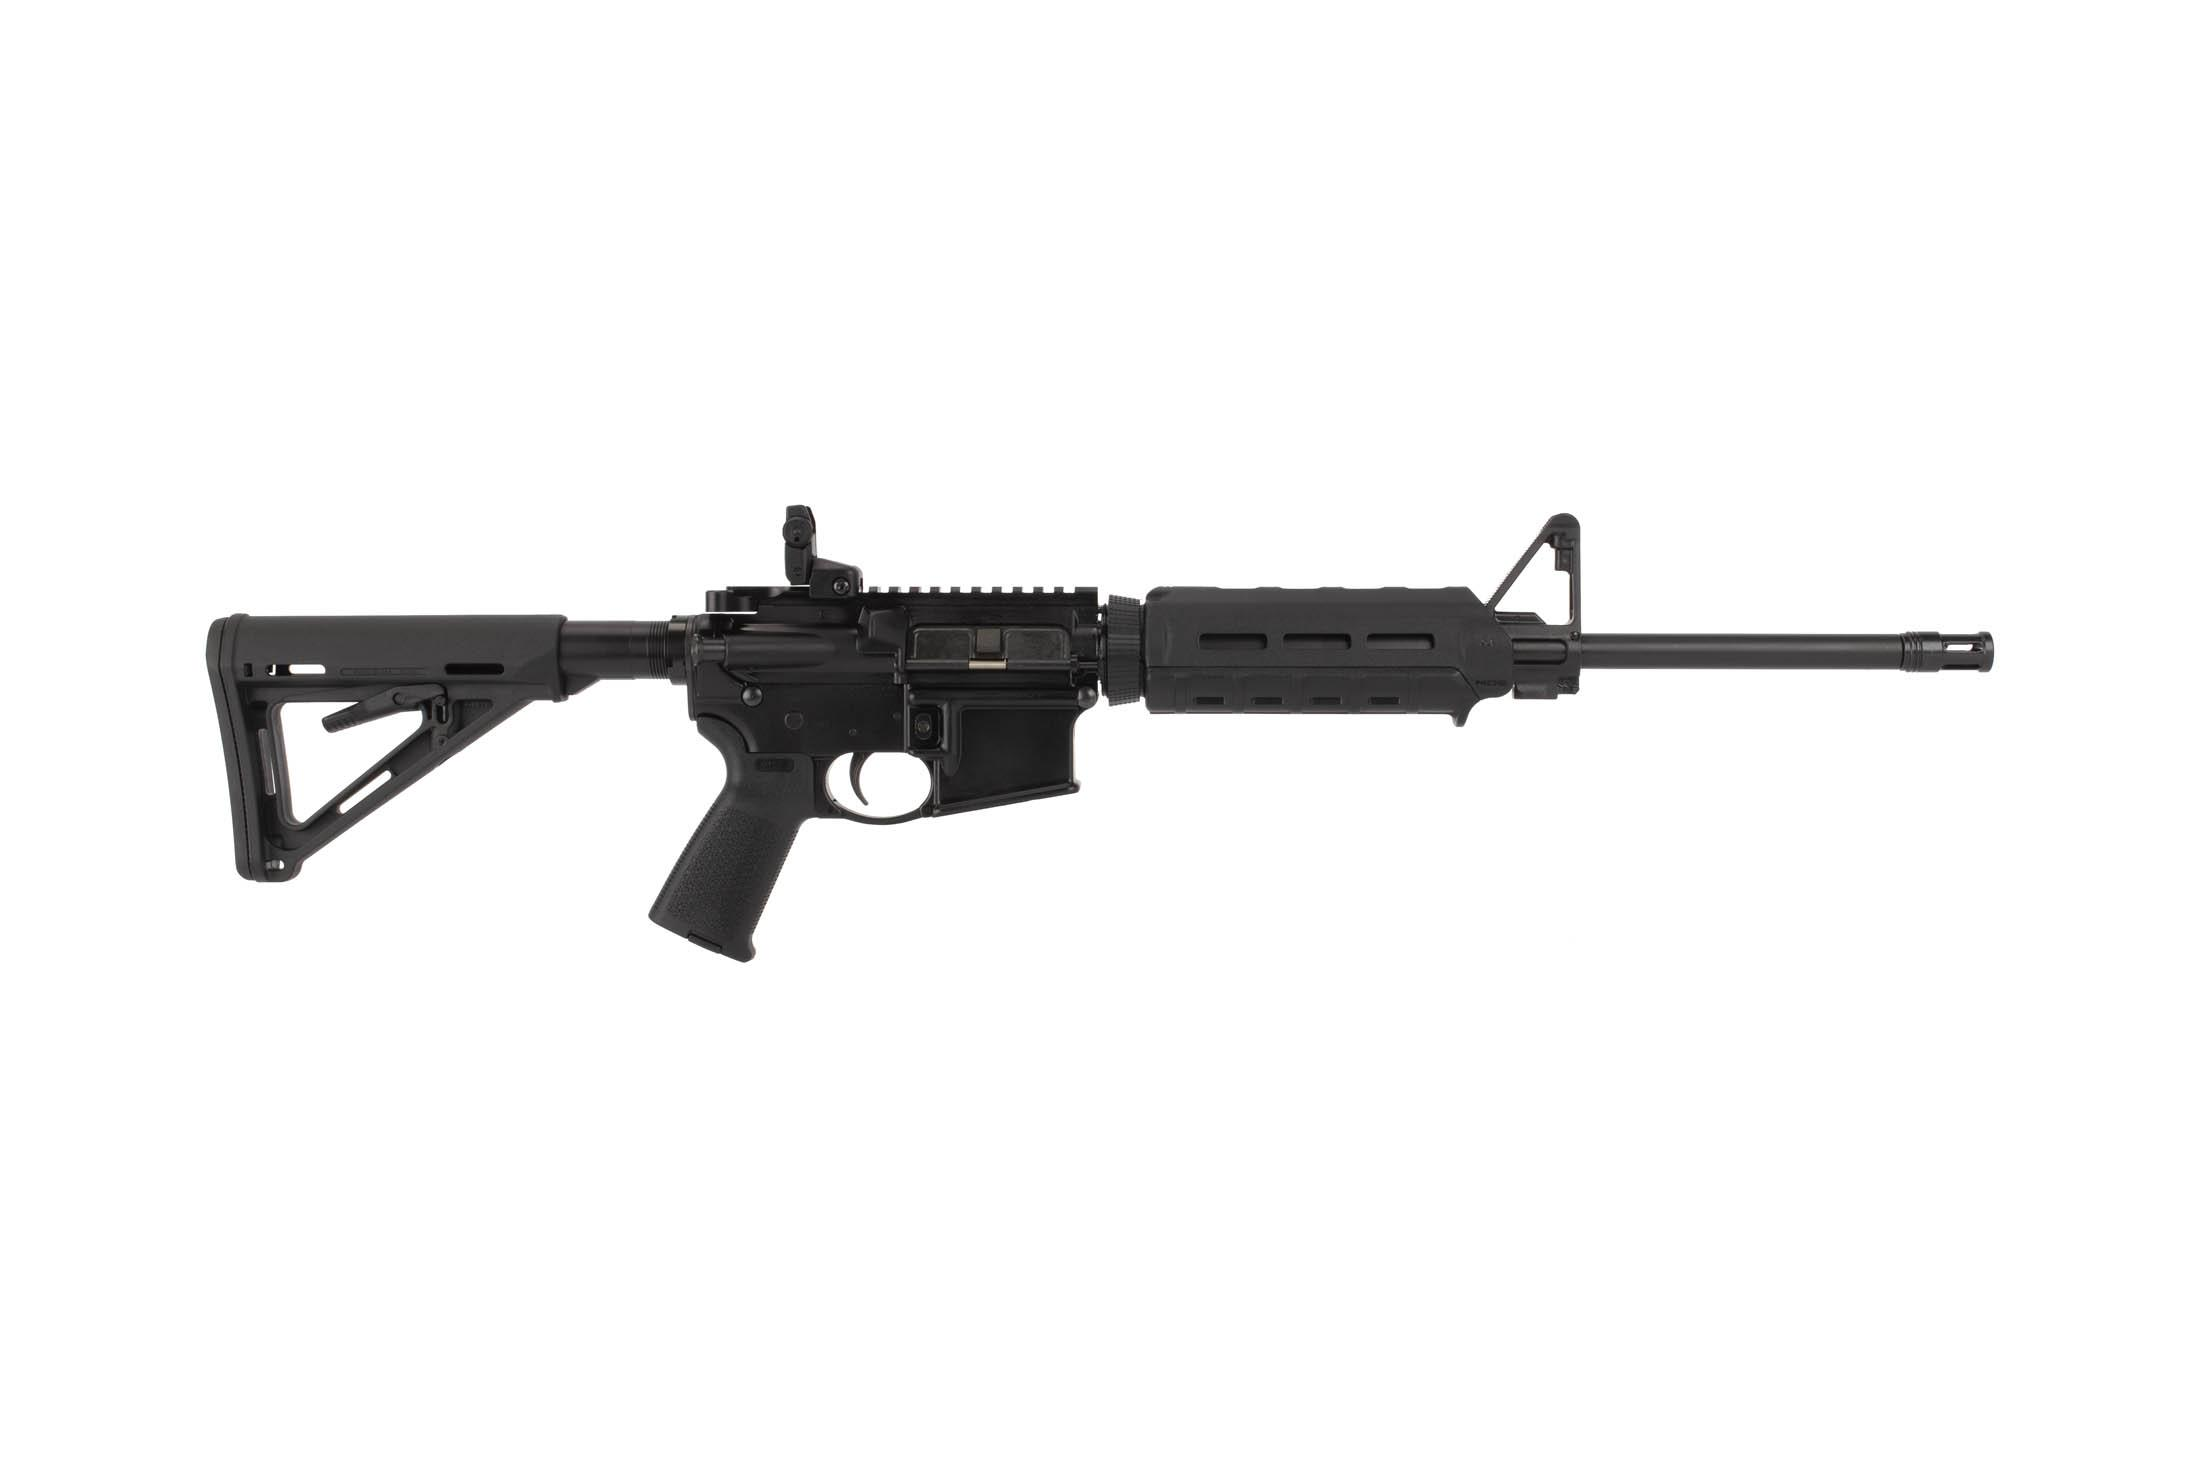 Ruger 8515 AR-556 AR-15 is ready-to-roll out of the box, complete with sights and a magazine.